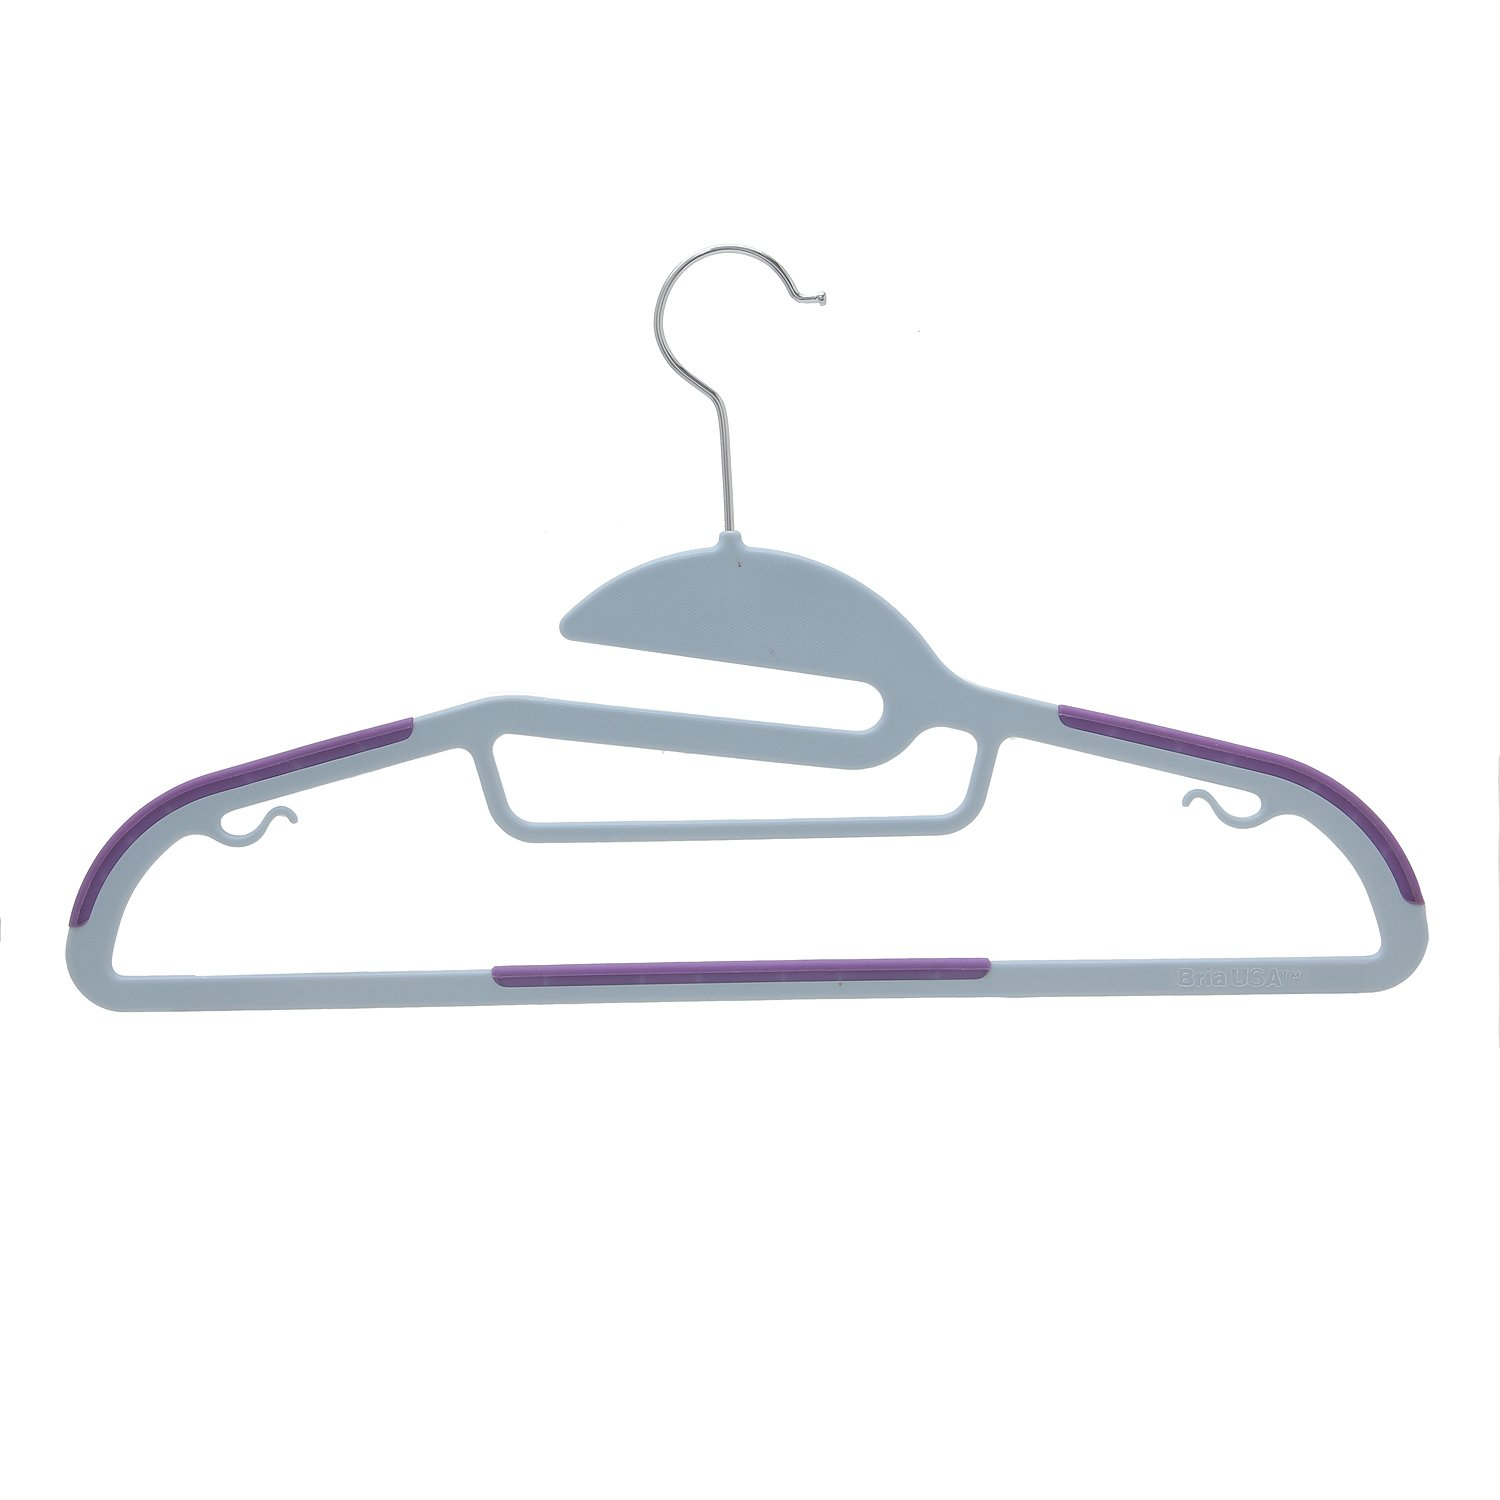 BriaUSA Dry Wet Clothes Hangers Amphibious Purple with Non-Slip Shoulder Design, Steel Swivel Hooks – Box of 20